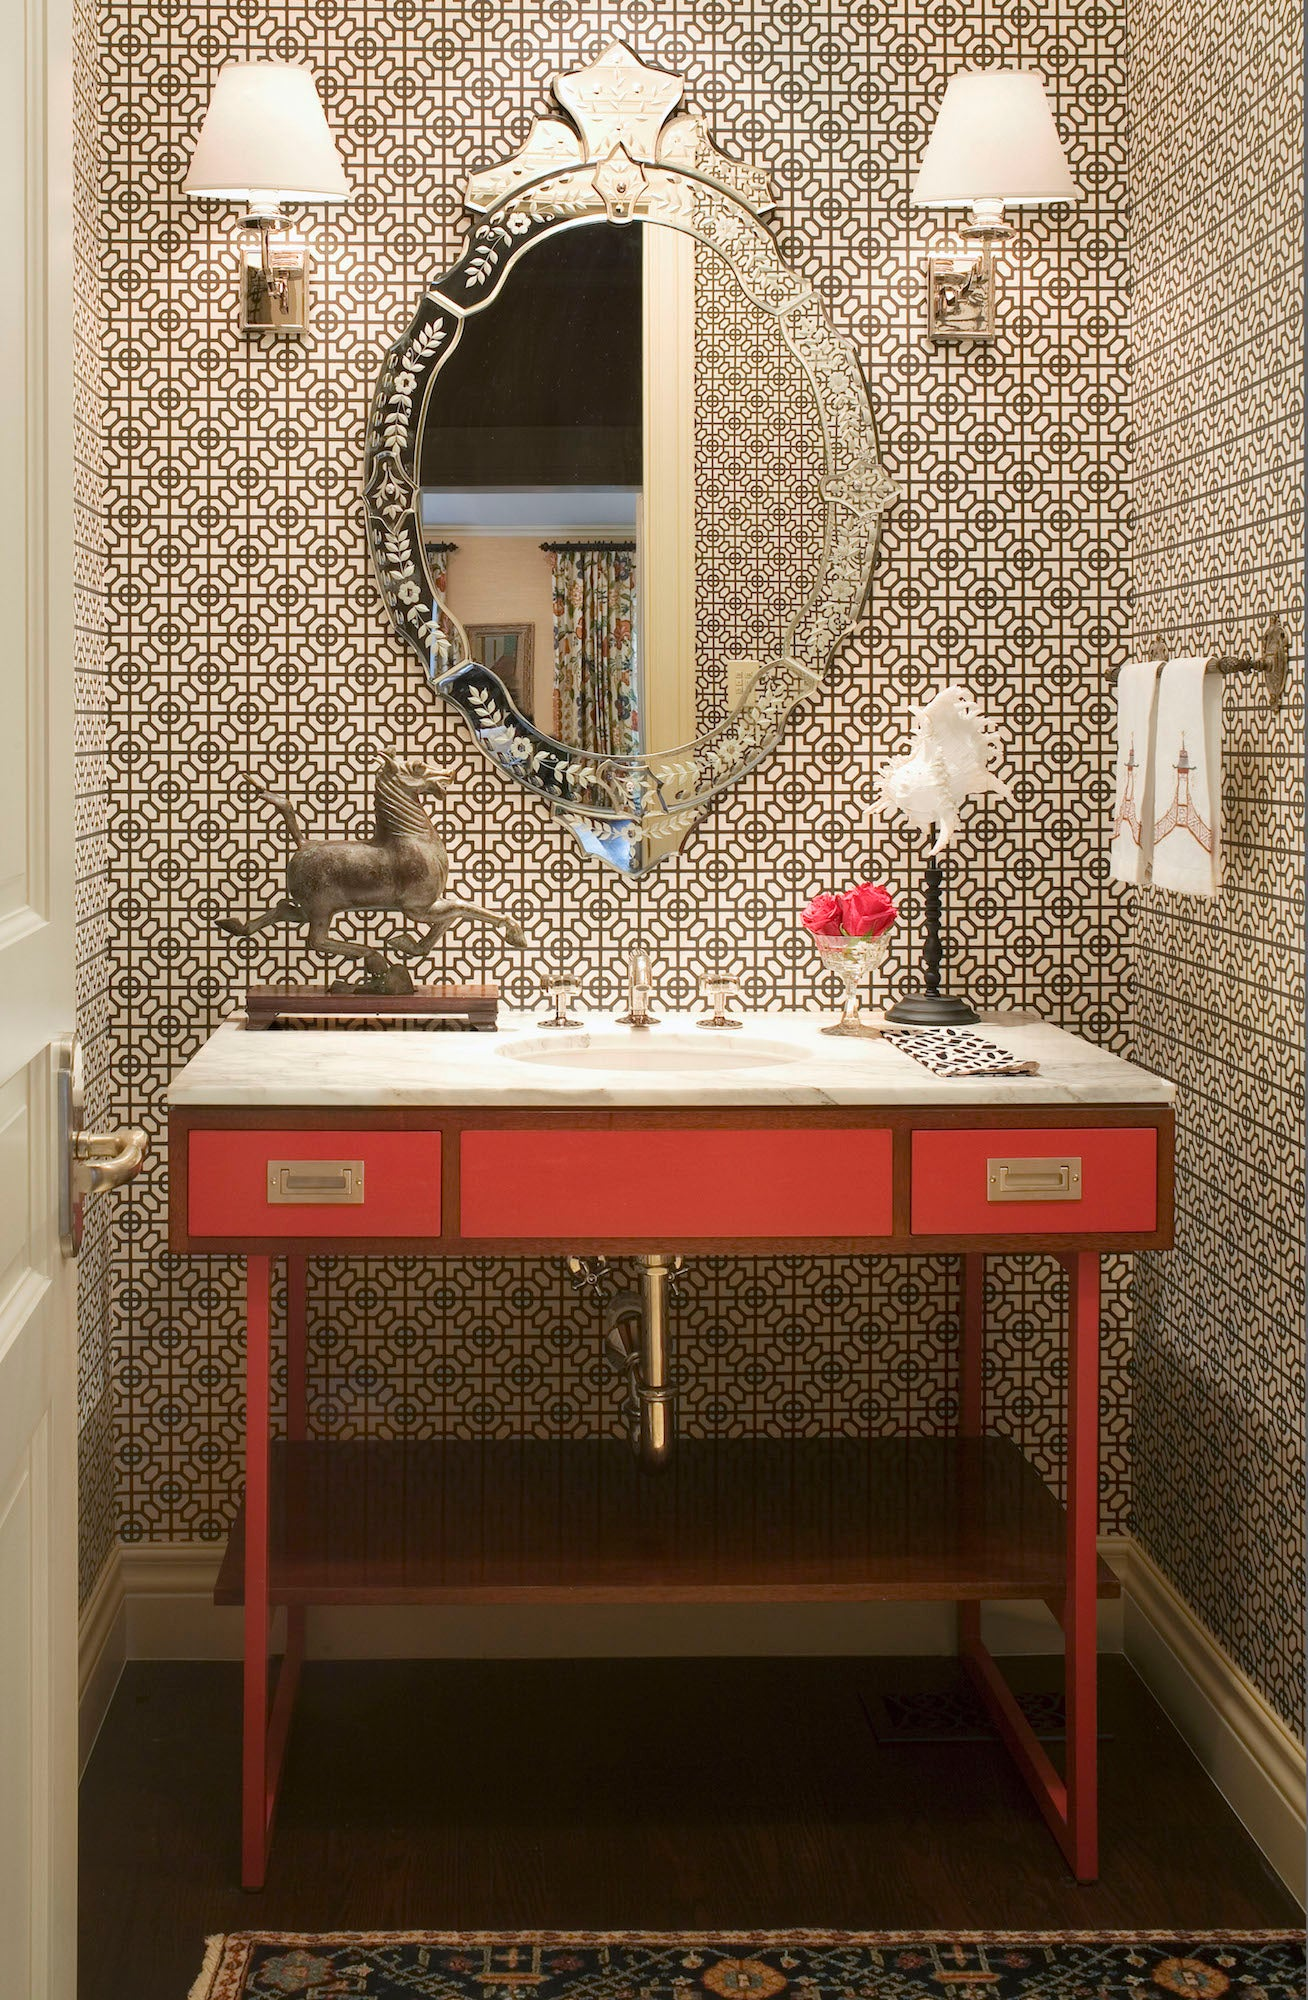 Andrea Schumacher transformed a petite powder room into a statement-making space with a vibrant red vanity from Waterworks and Sussex wallpaper in black and white by Designers Guild. Photo by Emily Minton Redfield